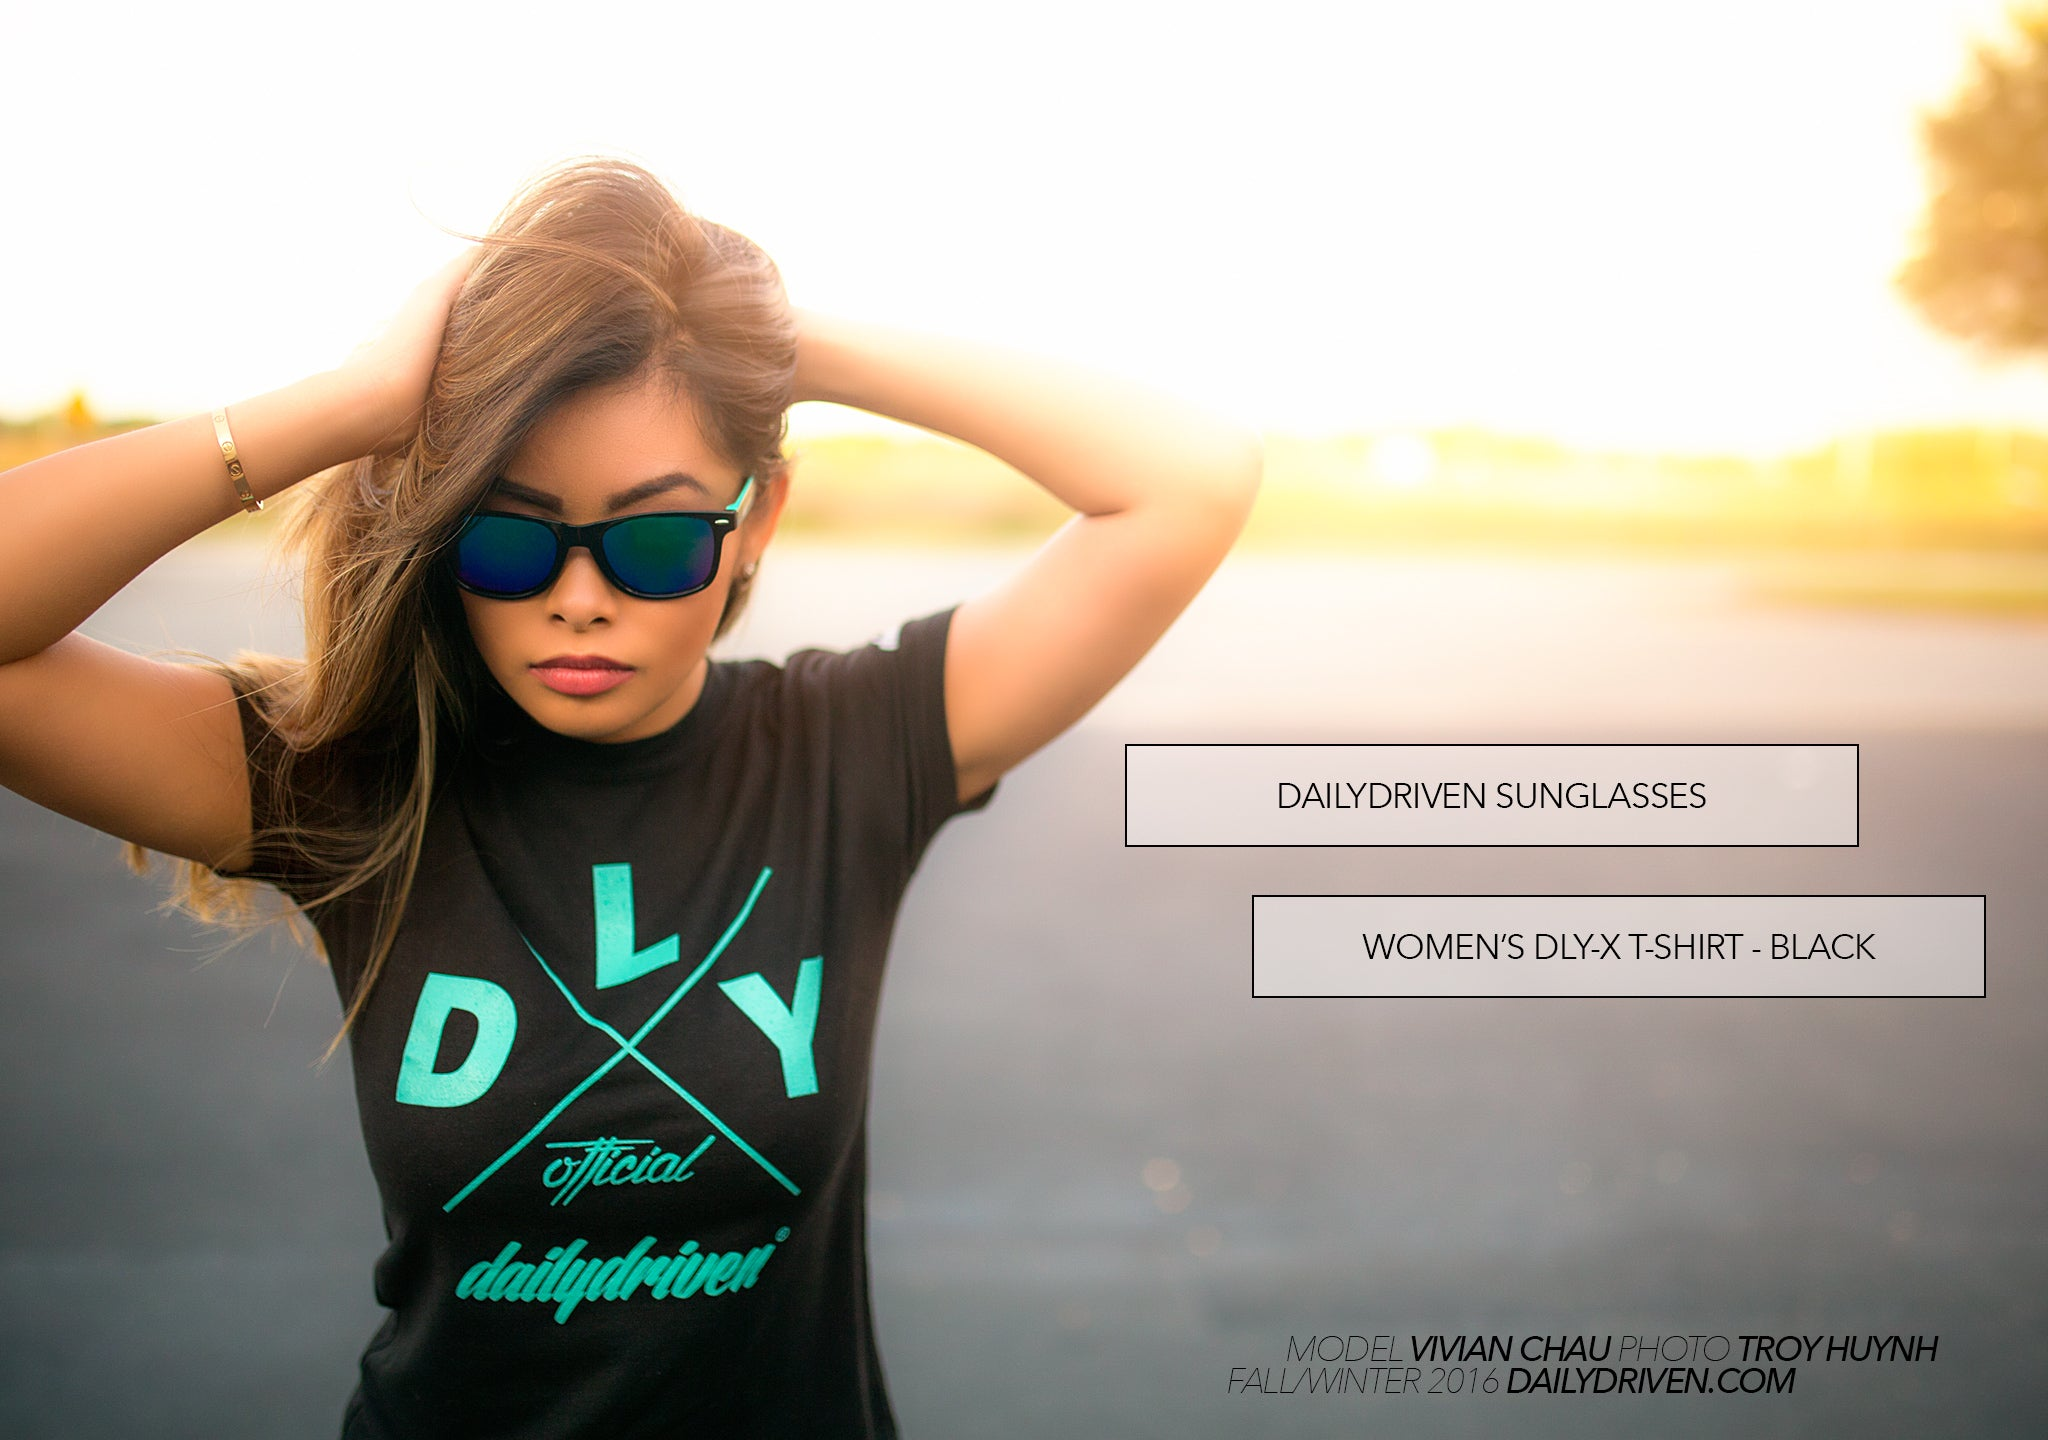 DailyDriven Women's DLY X T-Shirt